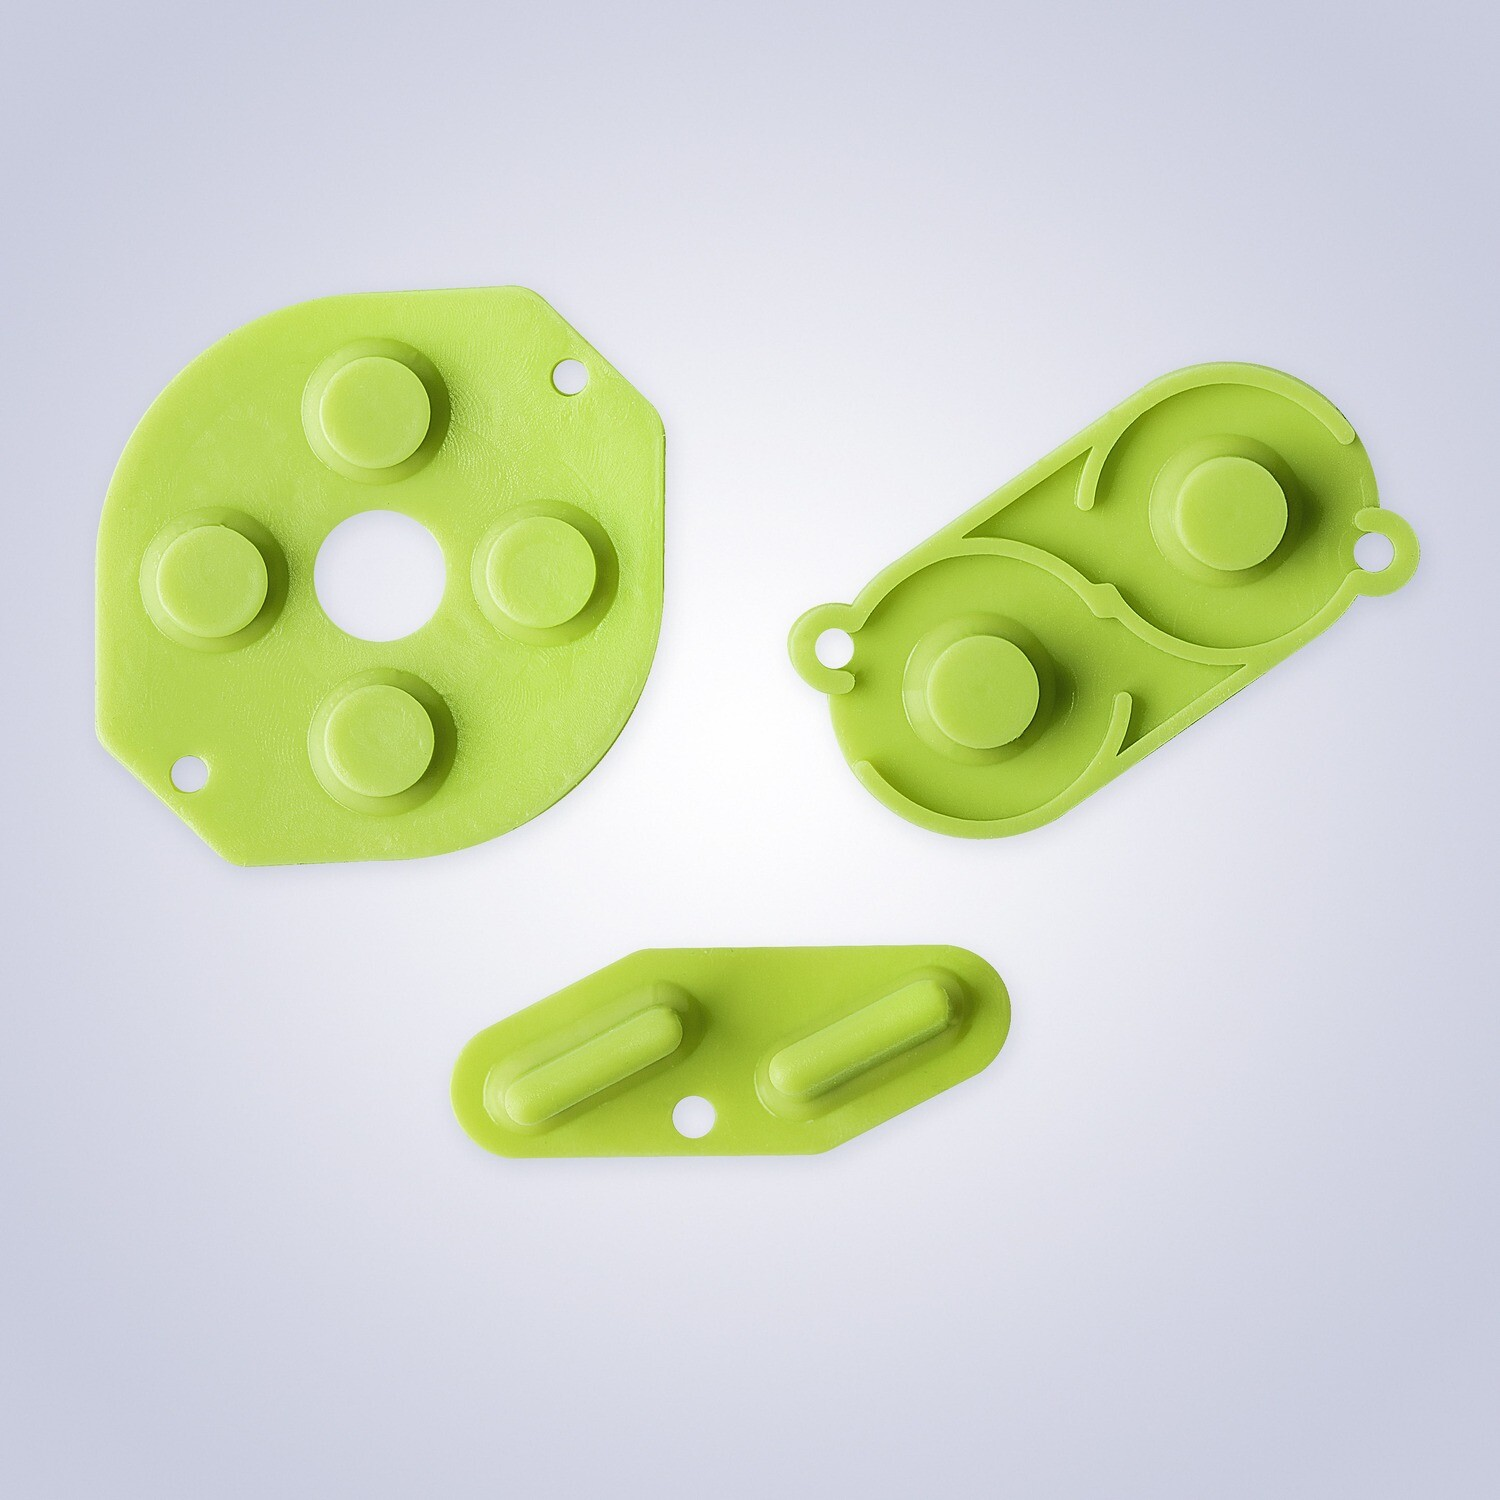 Game Boy Rubber Pads (Green)